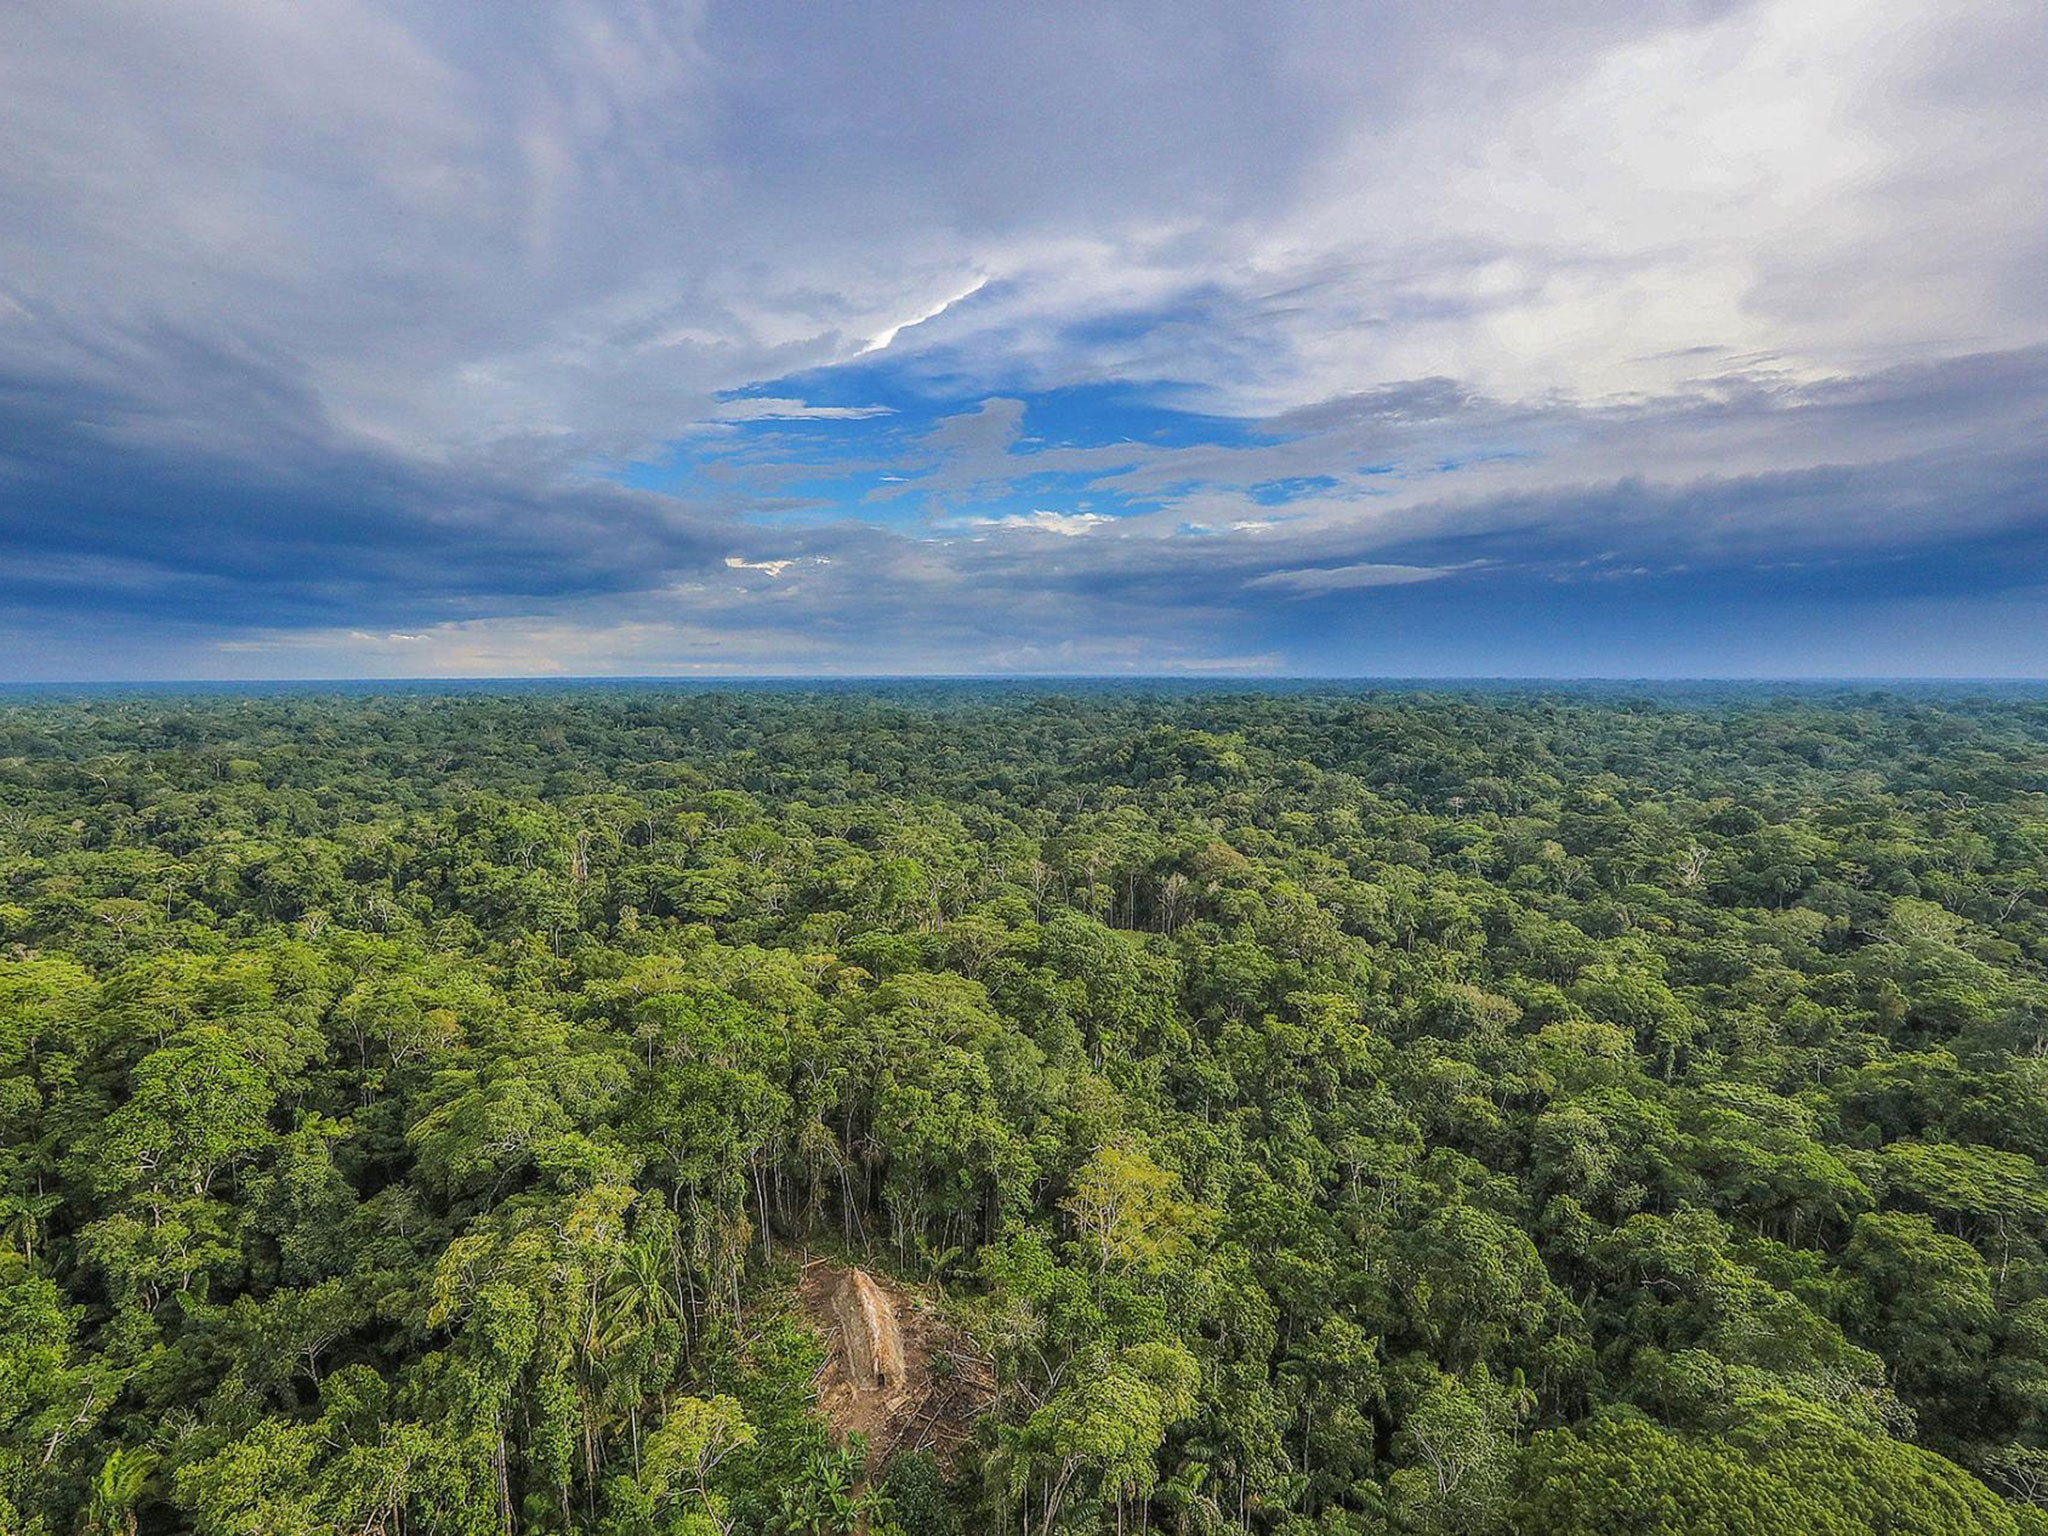 Thumbnail for Amazon jungle faces death spiral of drought and deforestation, warn scientists